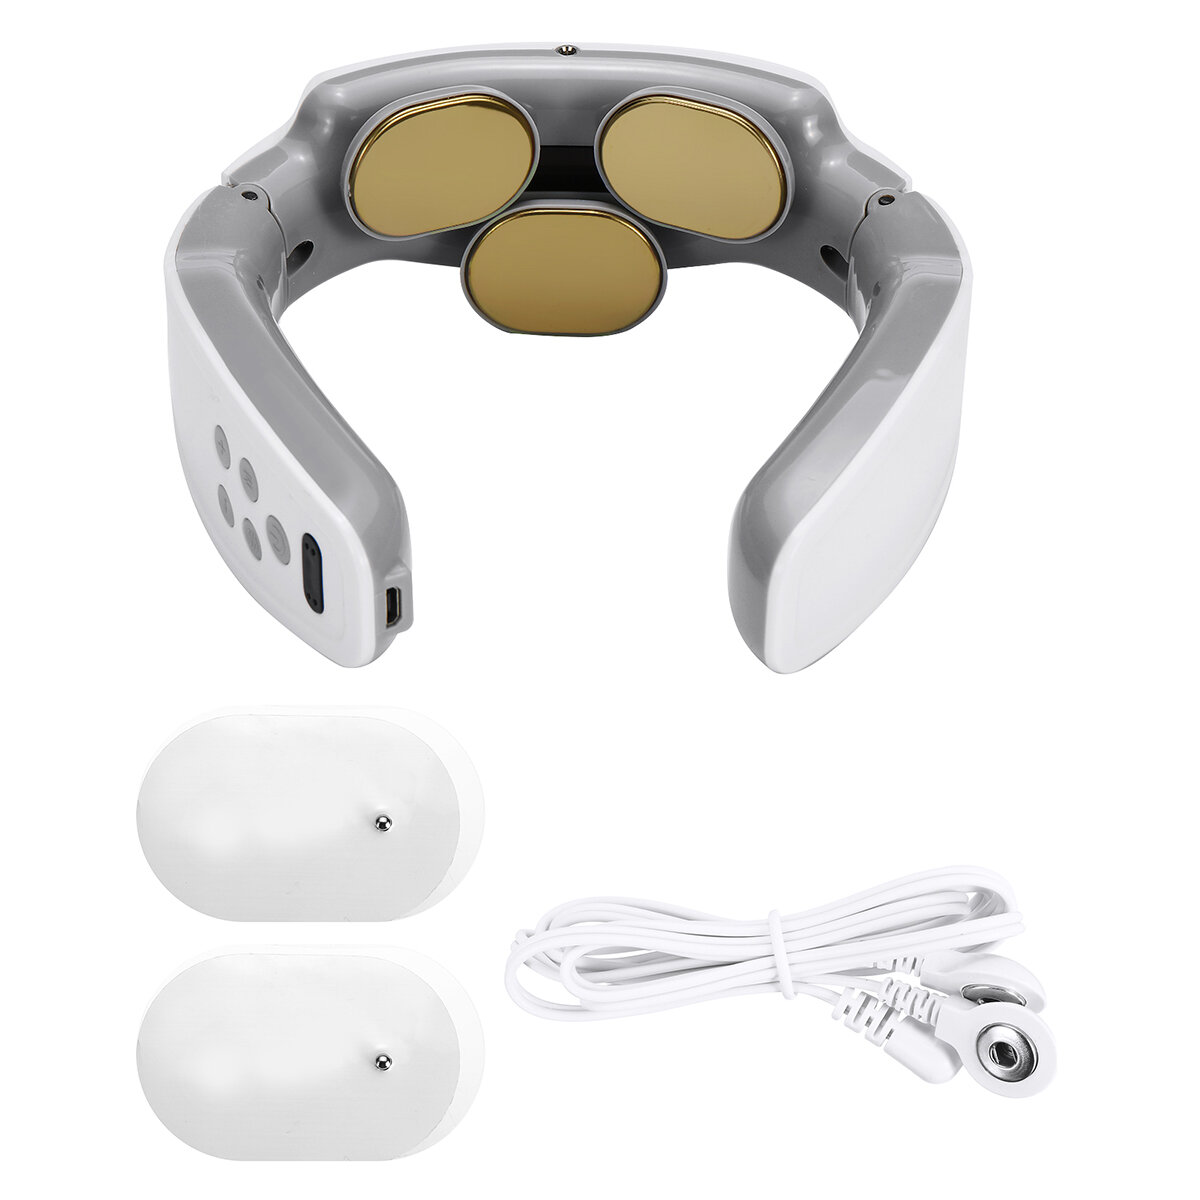 3 Modes 9 Levels Electric Cervical Massager 3 Head TENS Electrical Pulse Neck Acupuncture Percussion Pain Relief Hot Compress Magnetic with Electrodes Pads